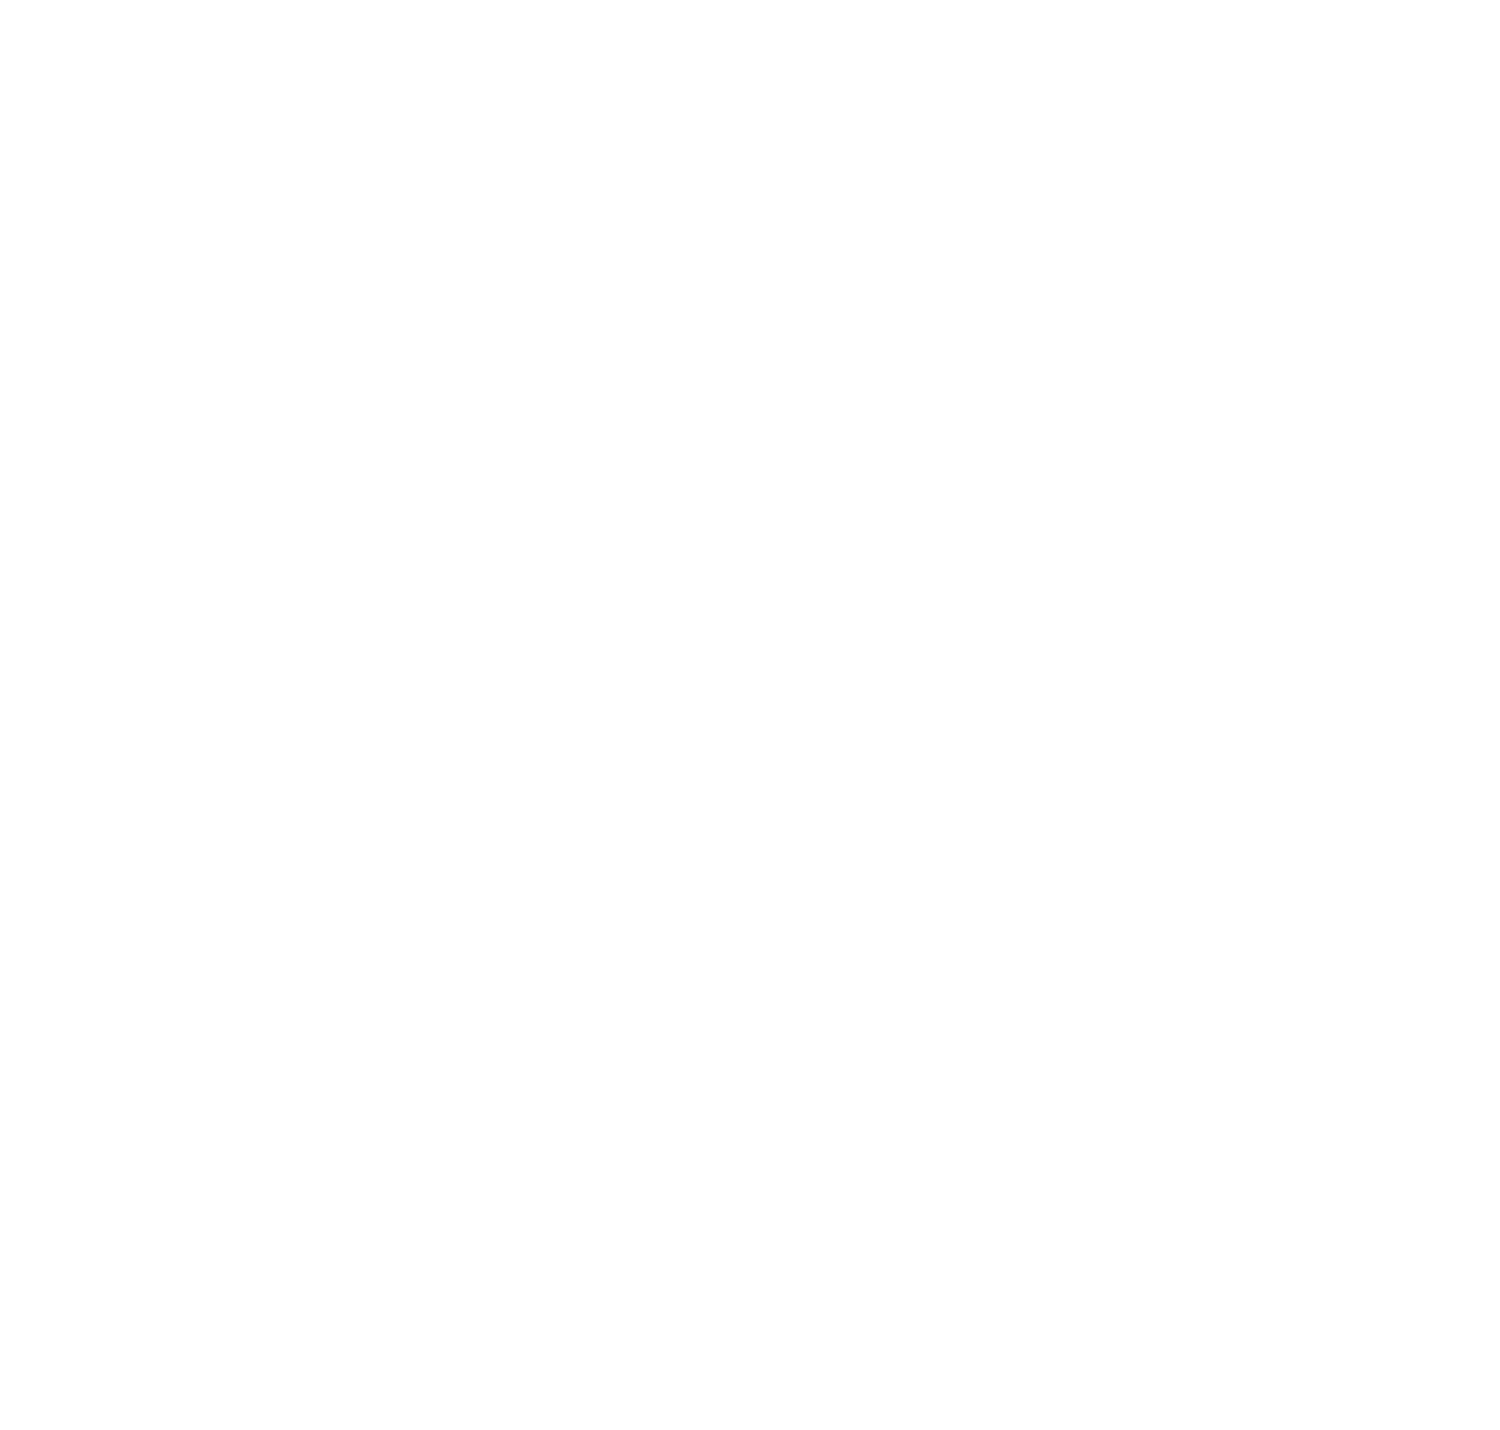 Ilo tiny house